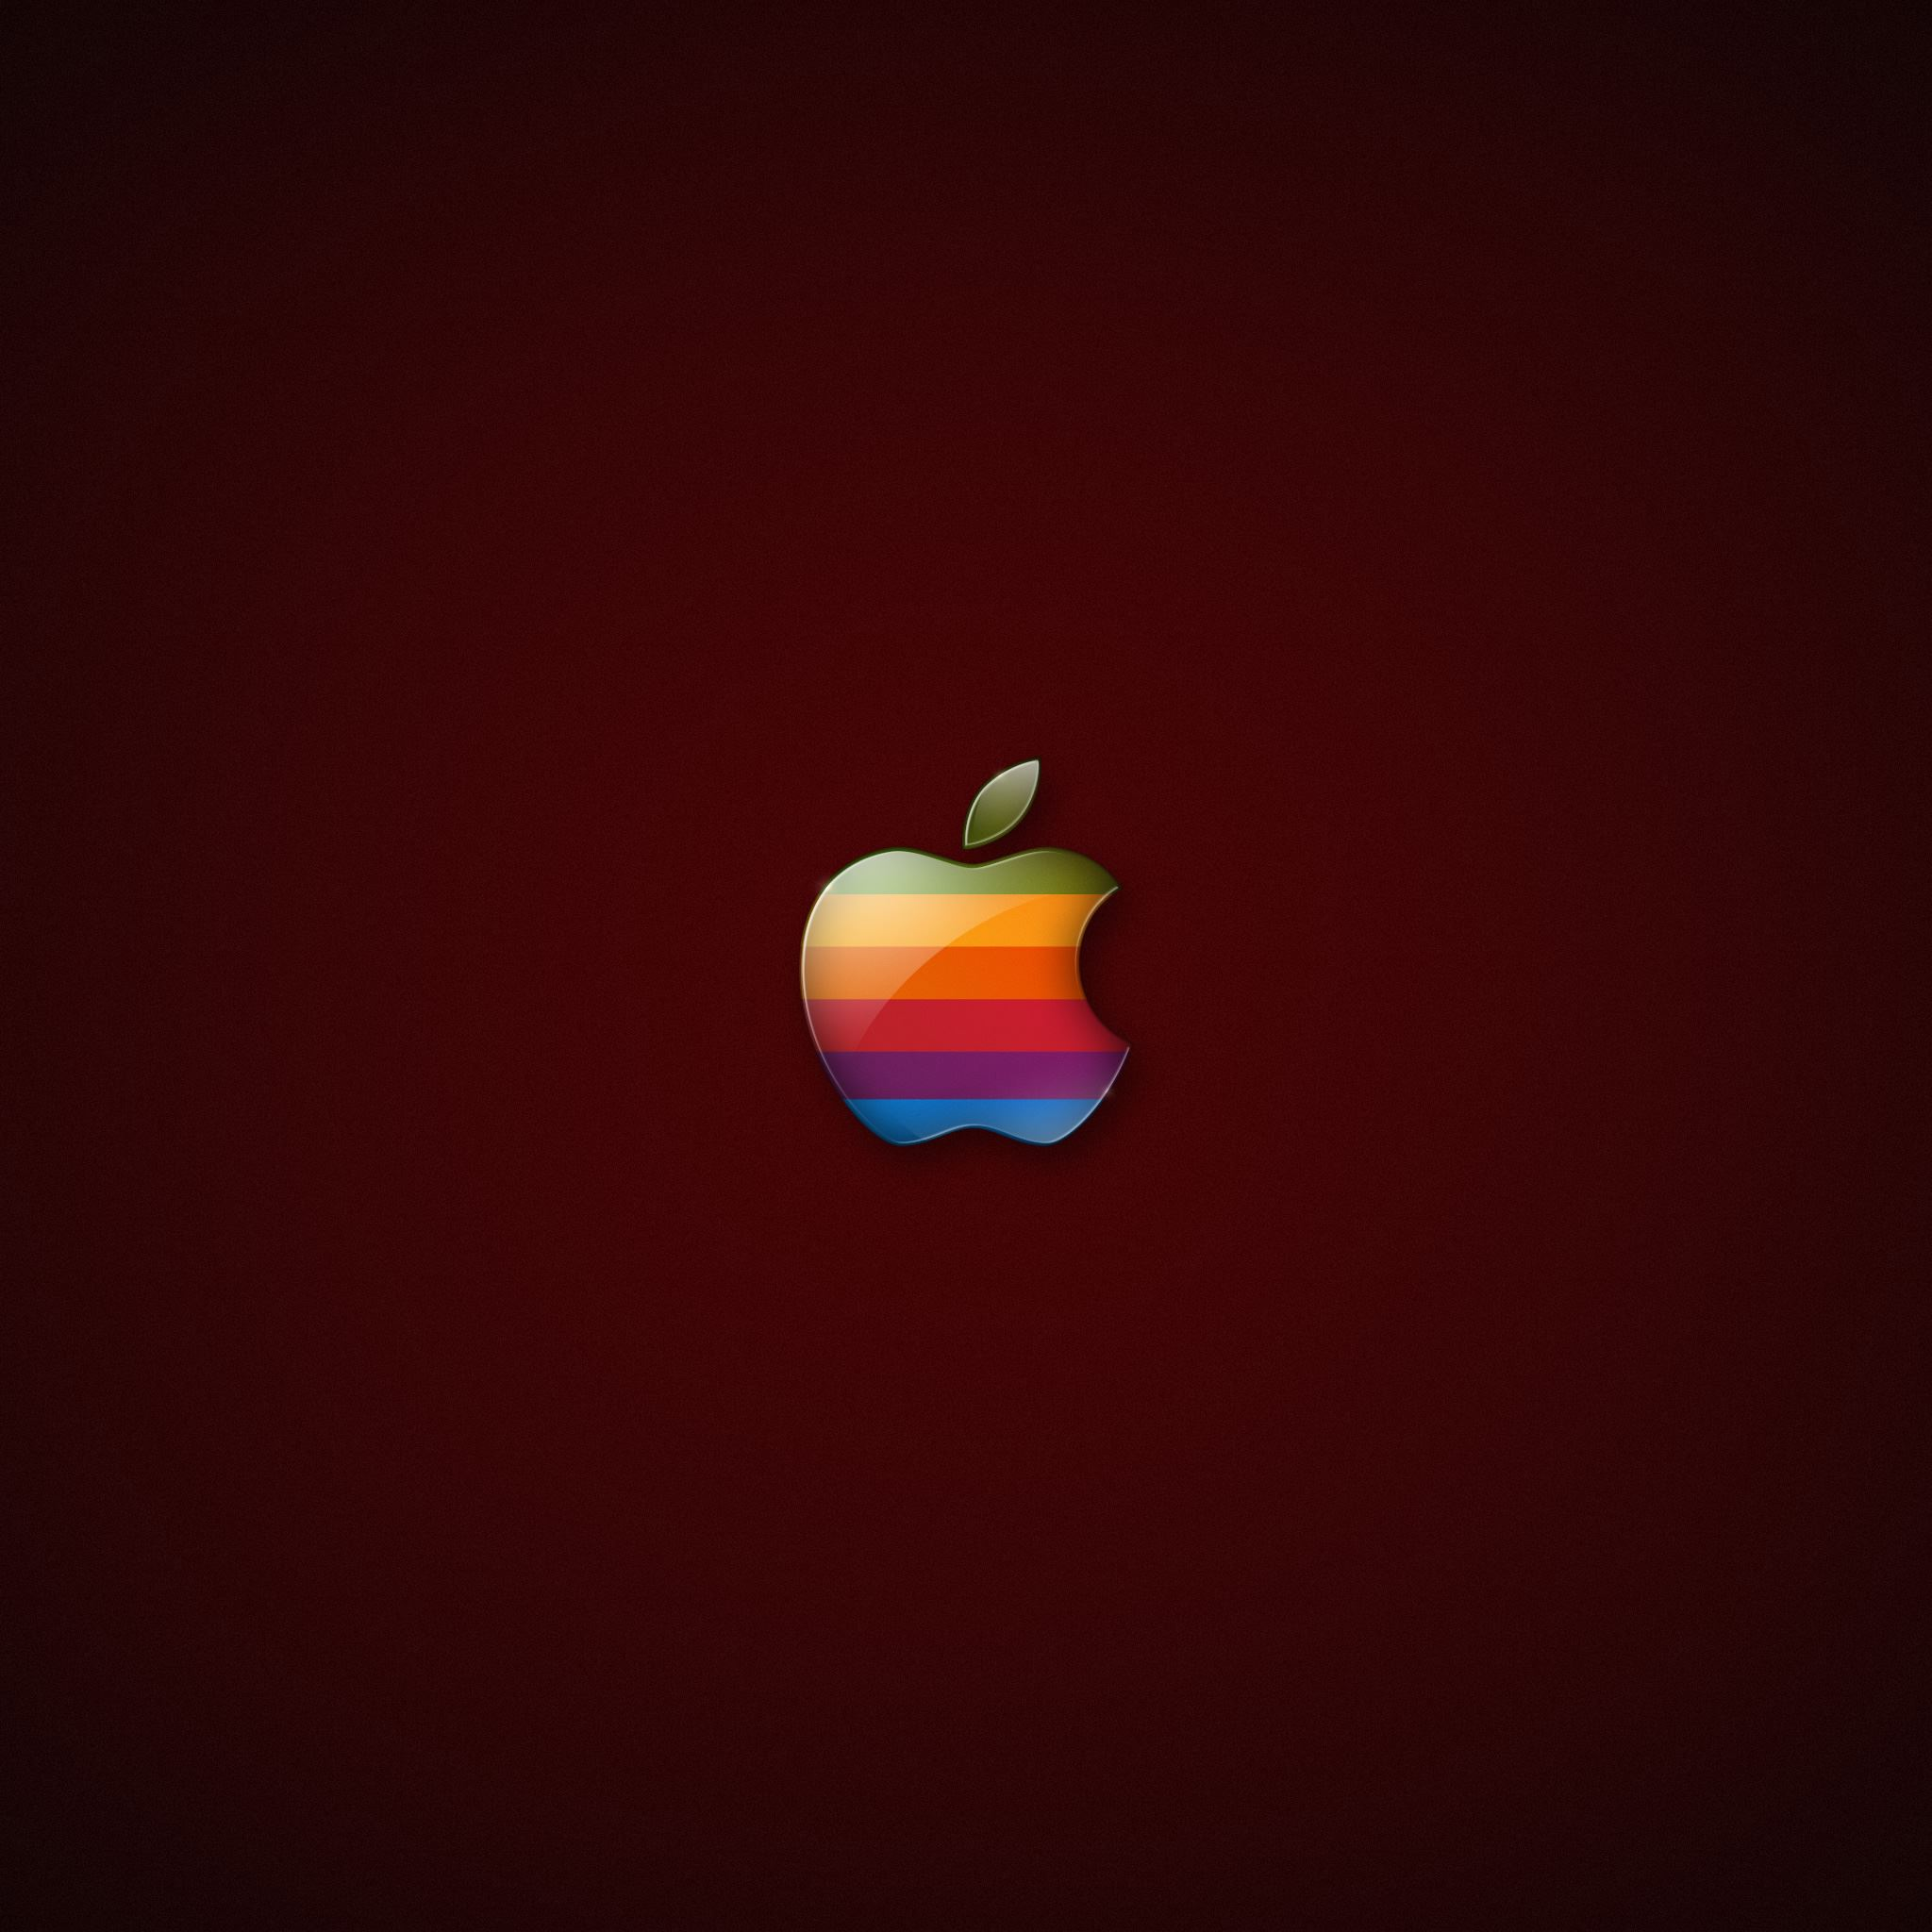 Classic Apple iPad Air wallpaper